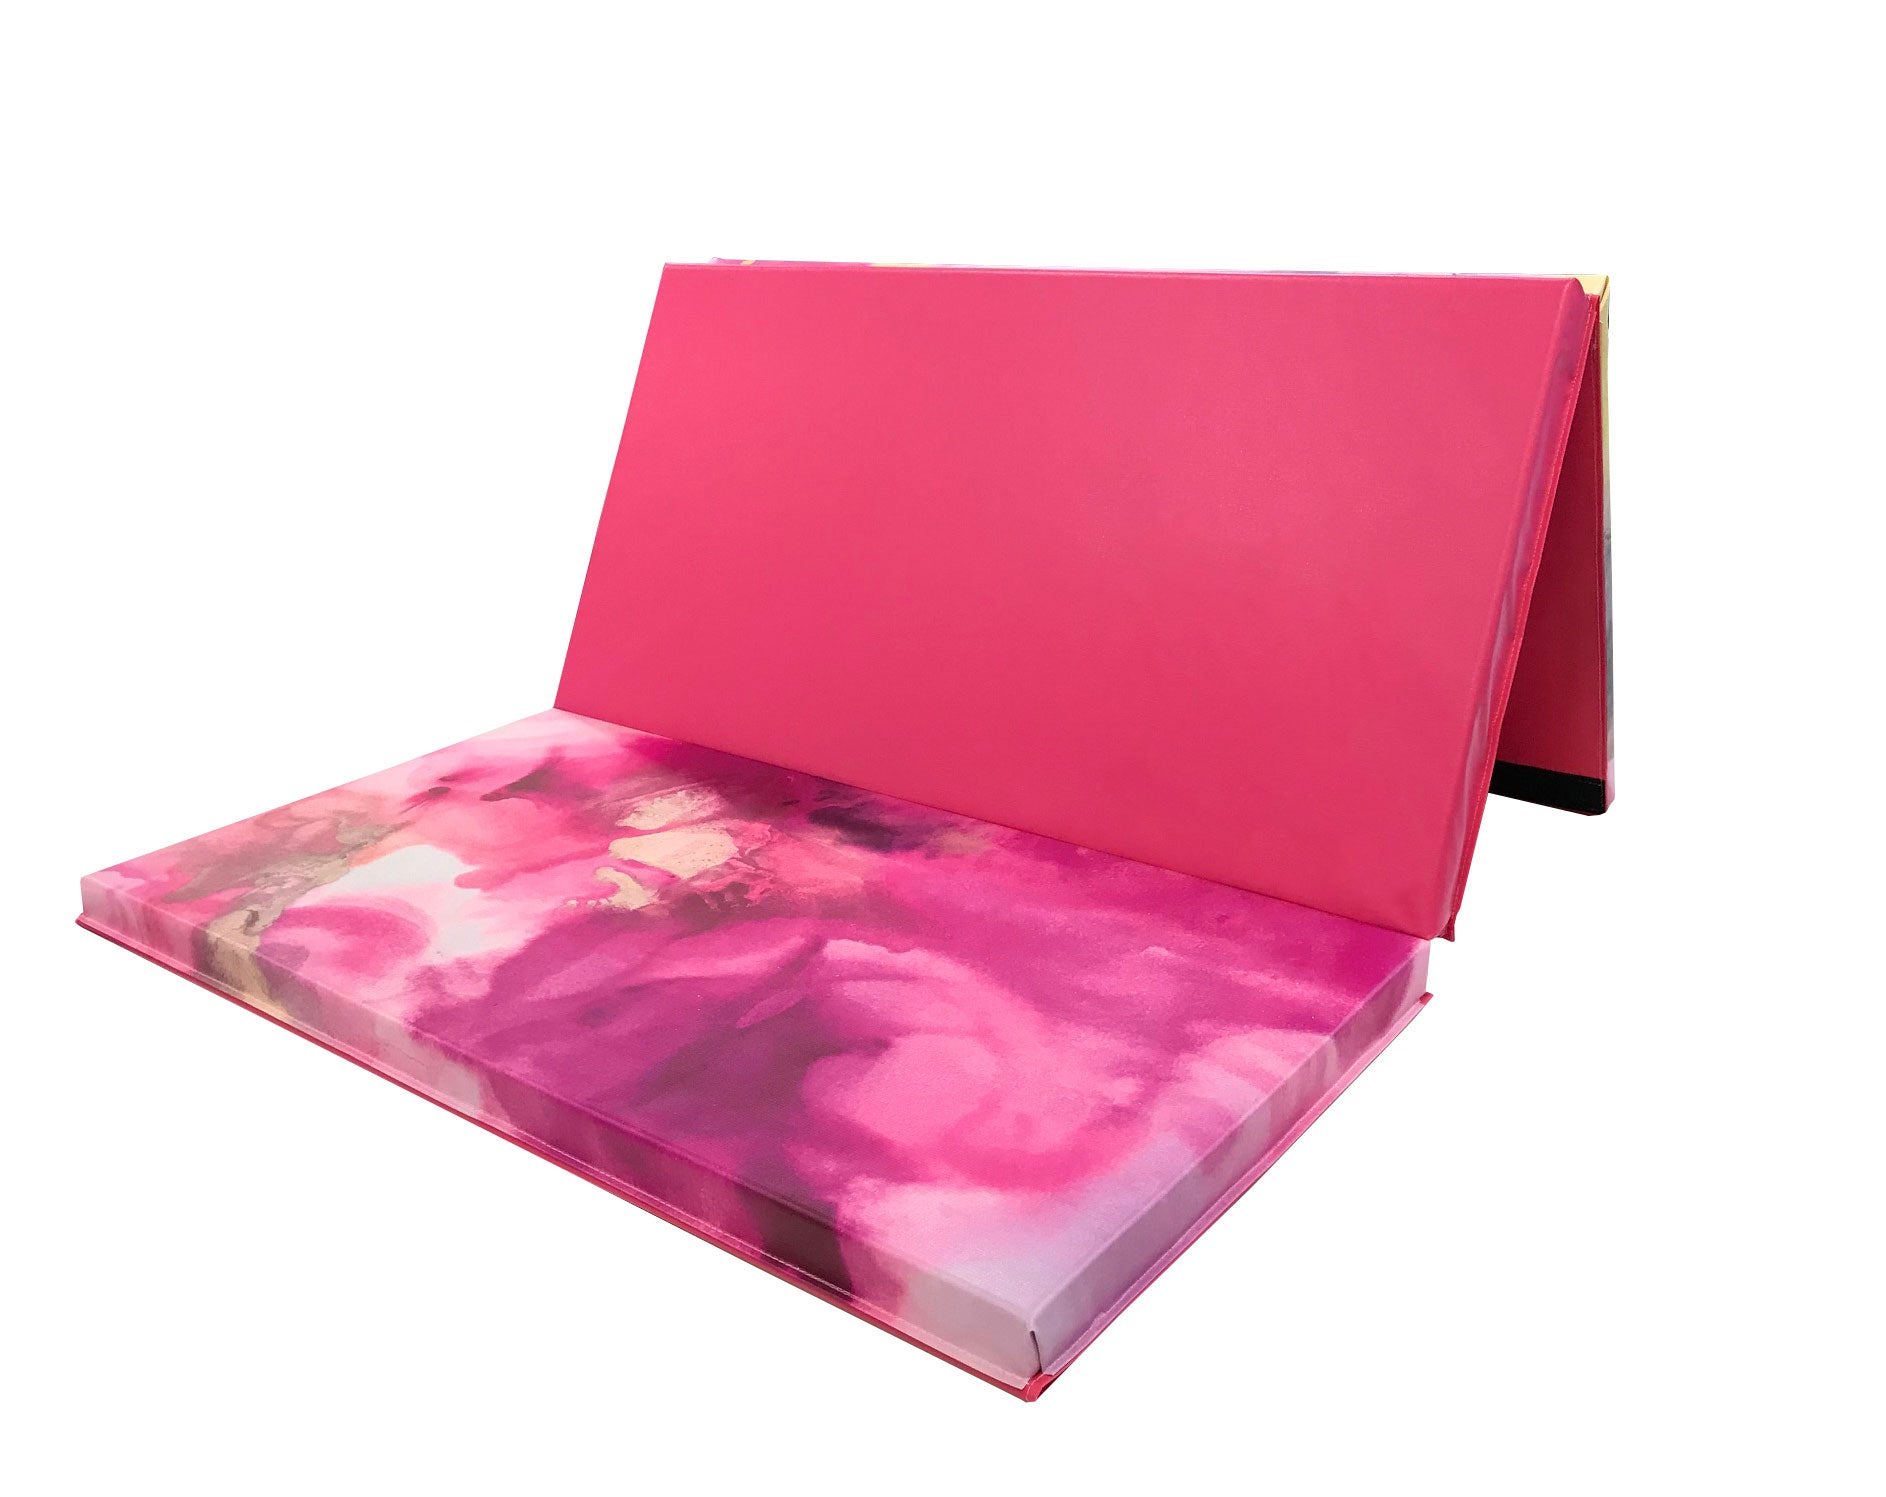 pink folding gymnastics mat, pink gym mat